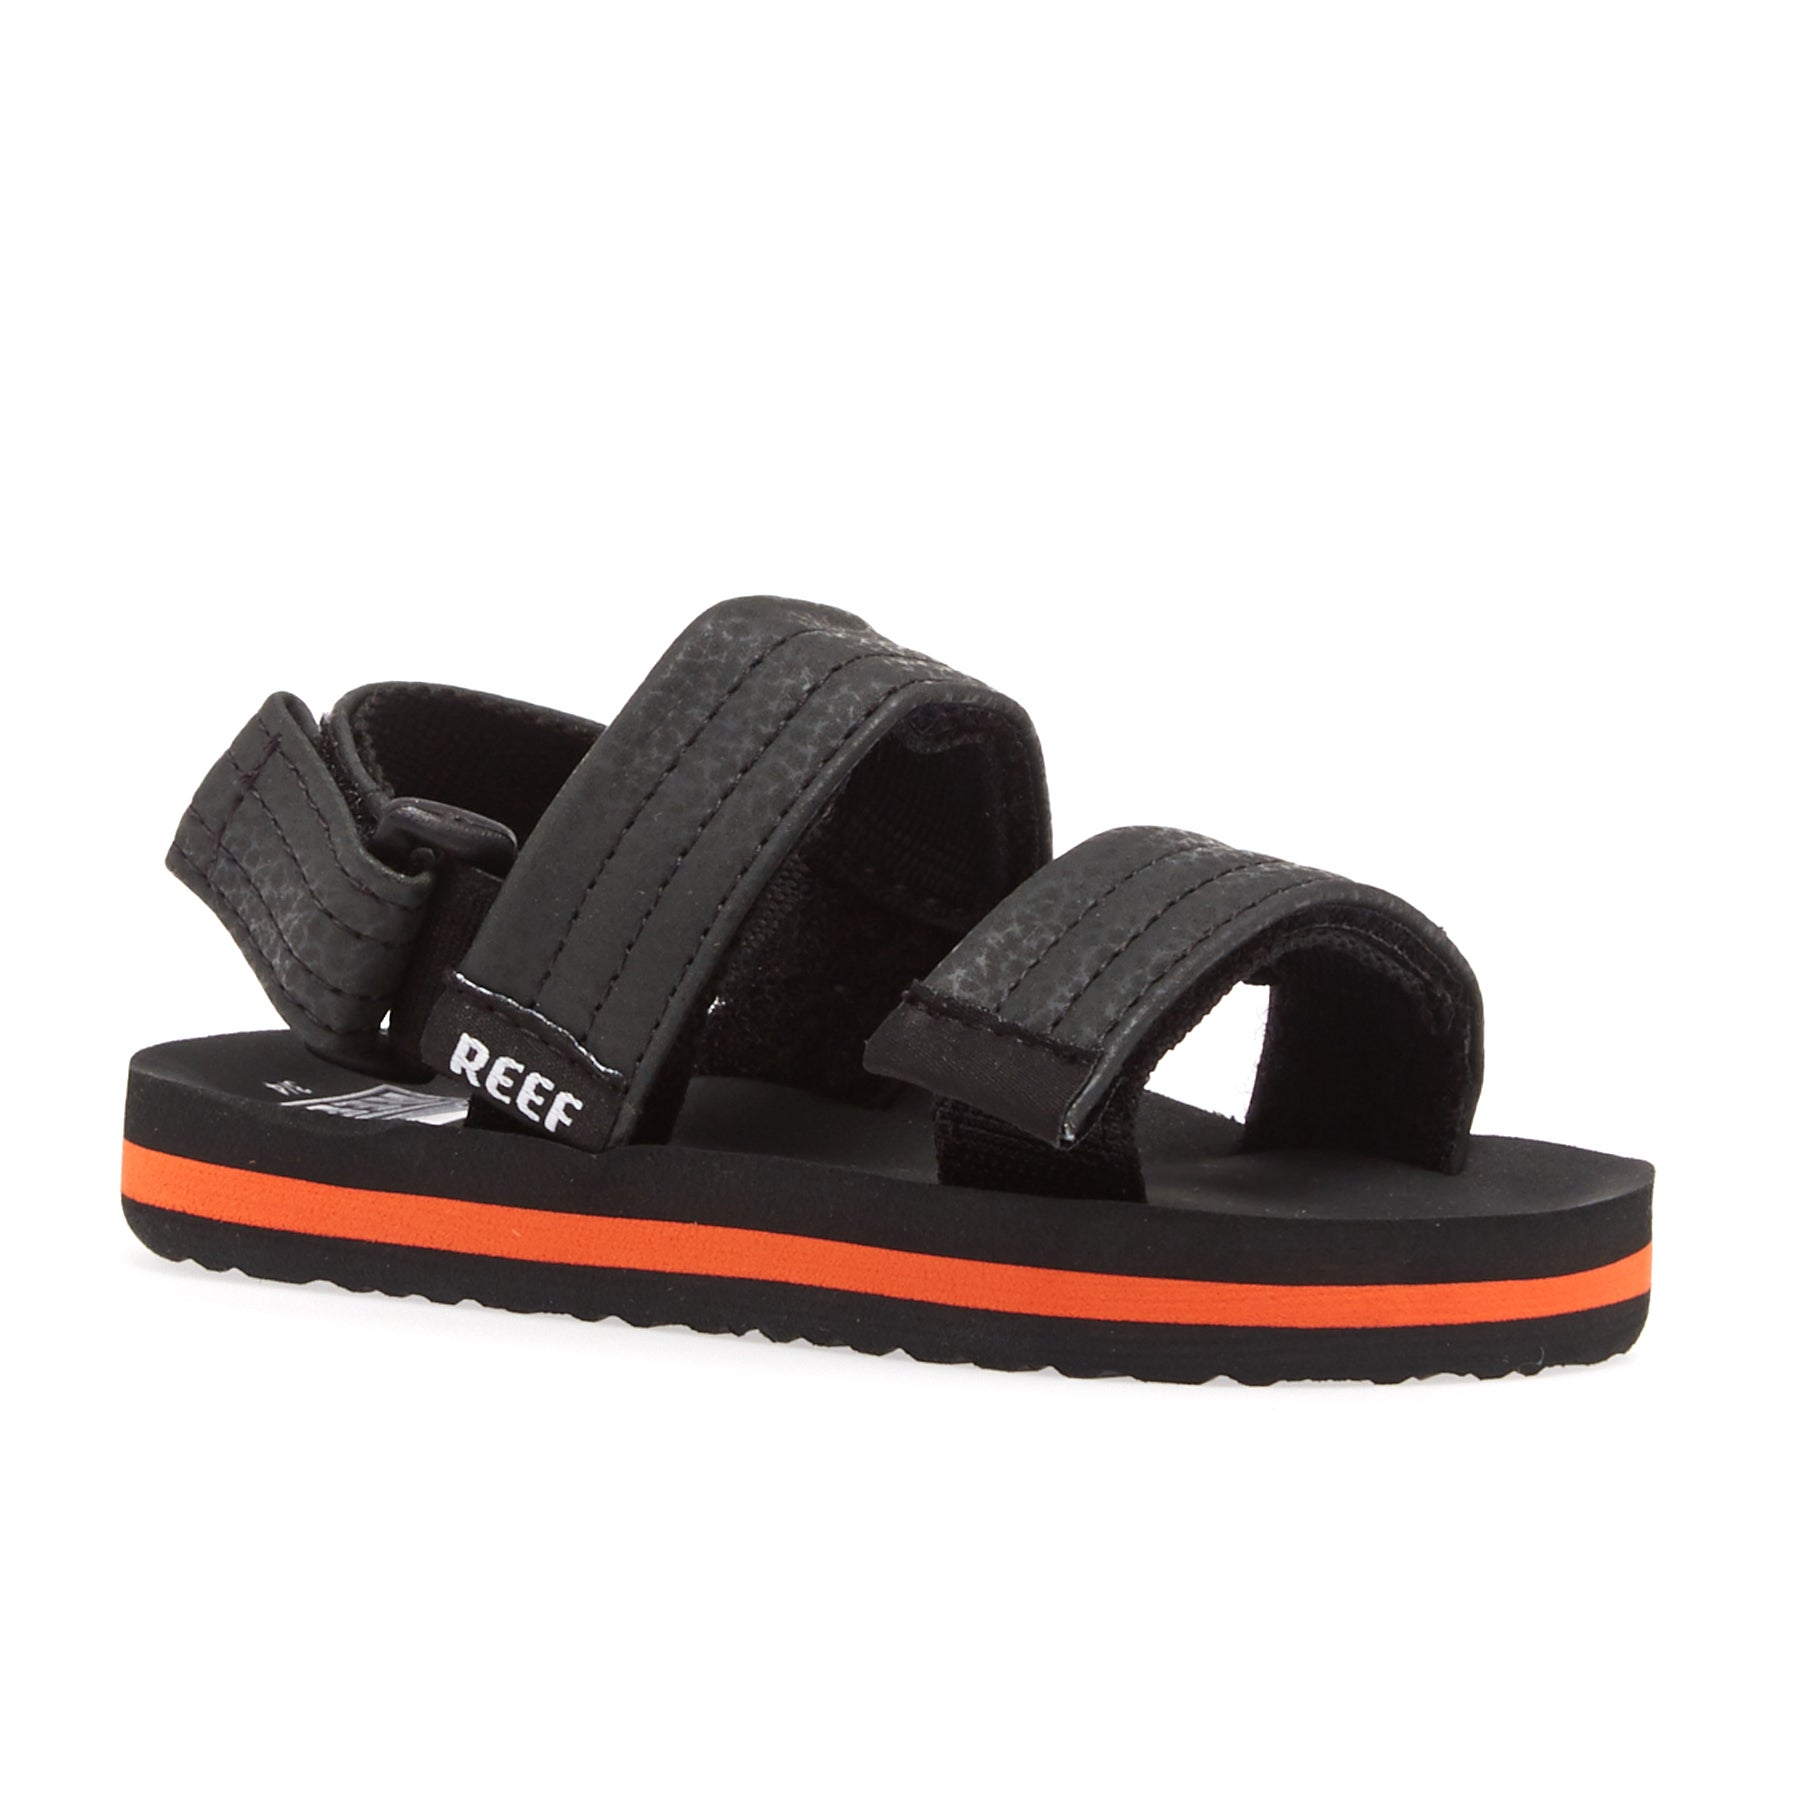 Reef Little Ahi Convertible Kids Sandals - Grey Orange